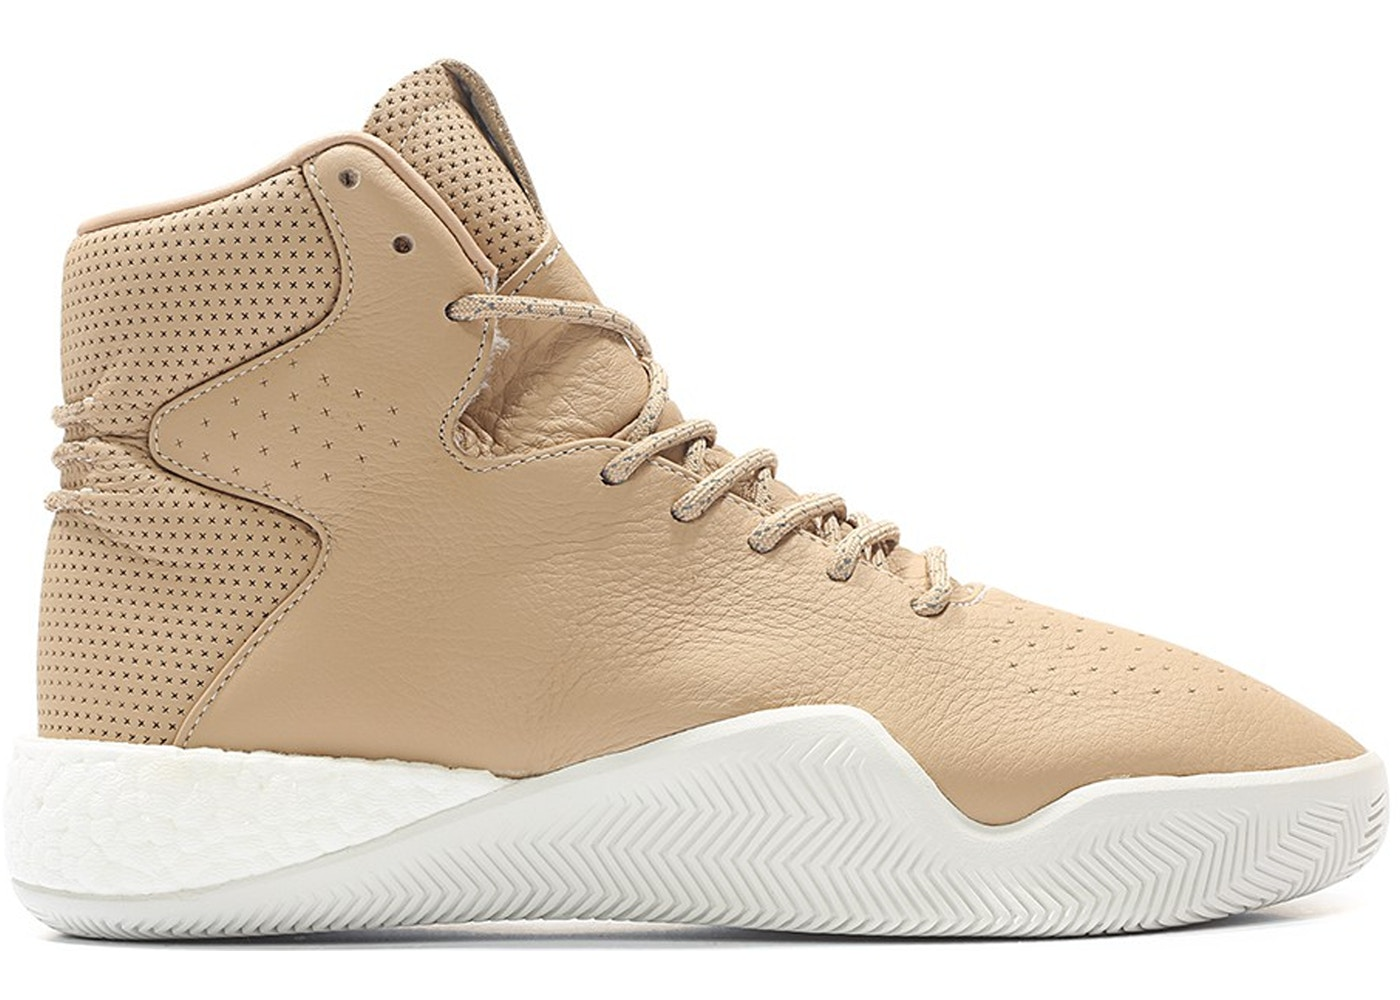 new product af321 bce4d adidas Tubular Instinct Boost Tan Leather